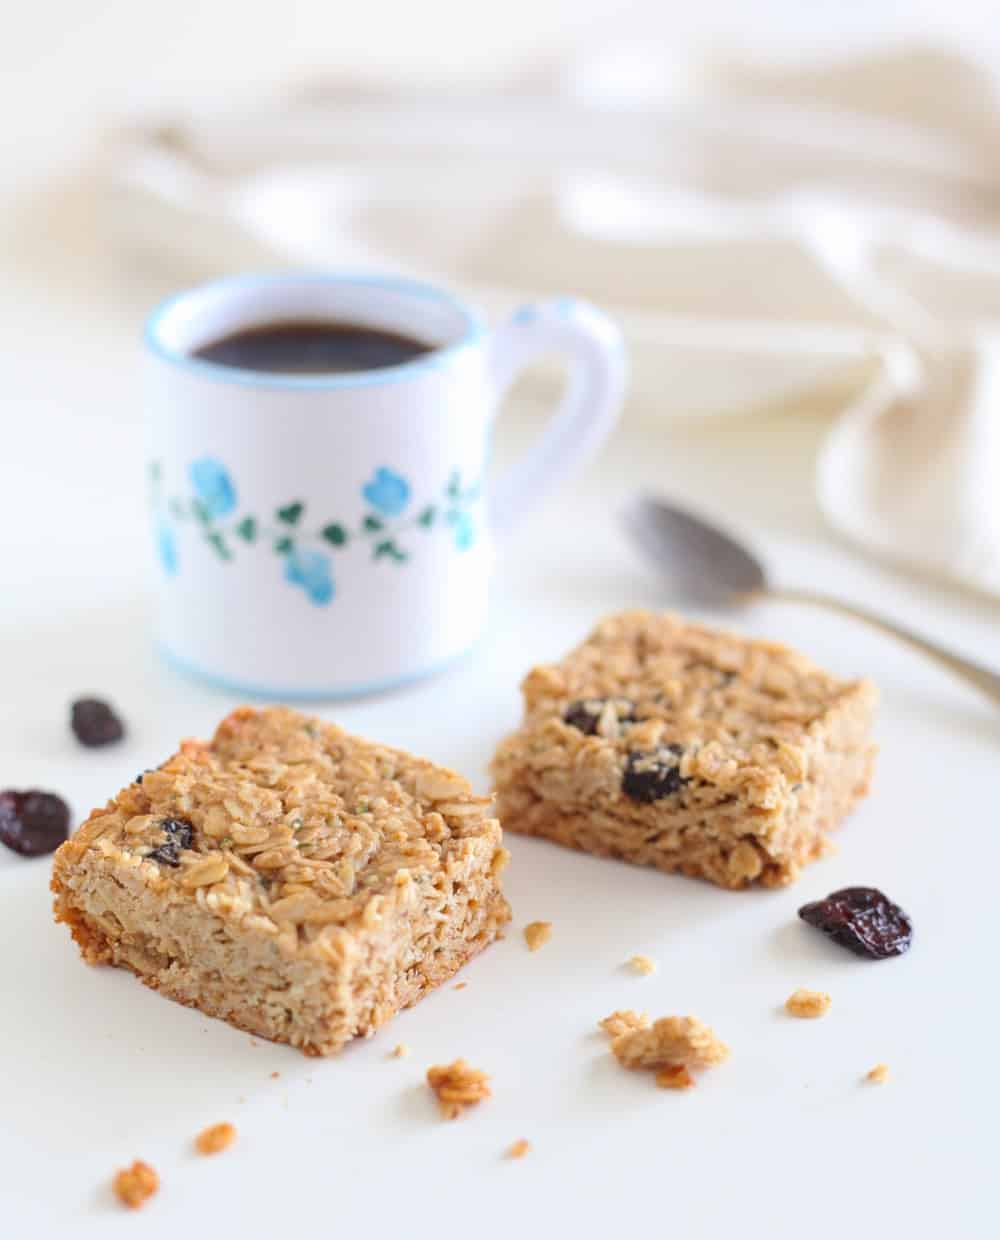 Two tahini cherry granola bars in front of a cup of coffee